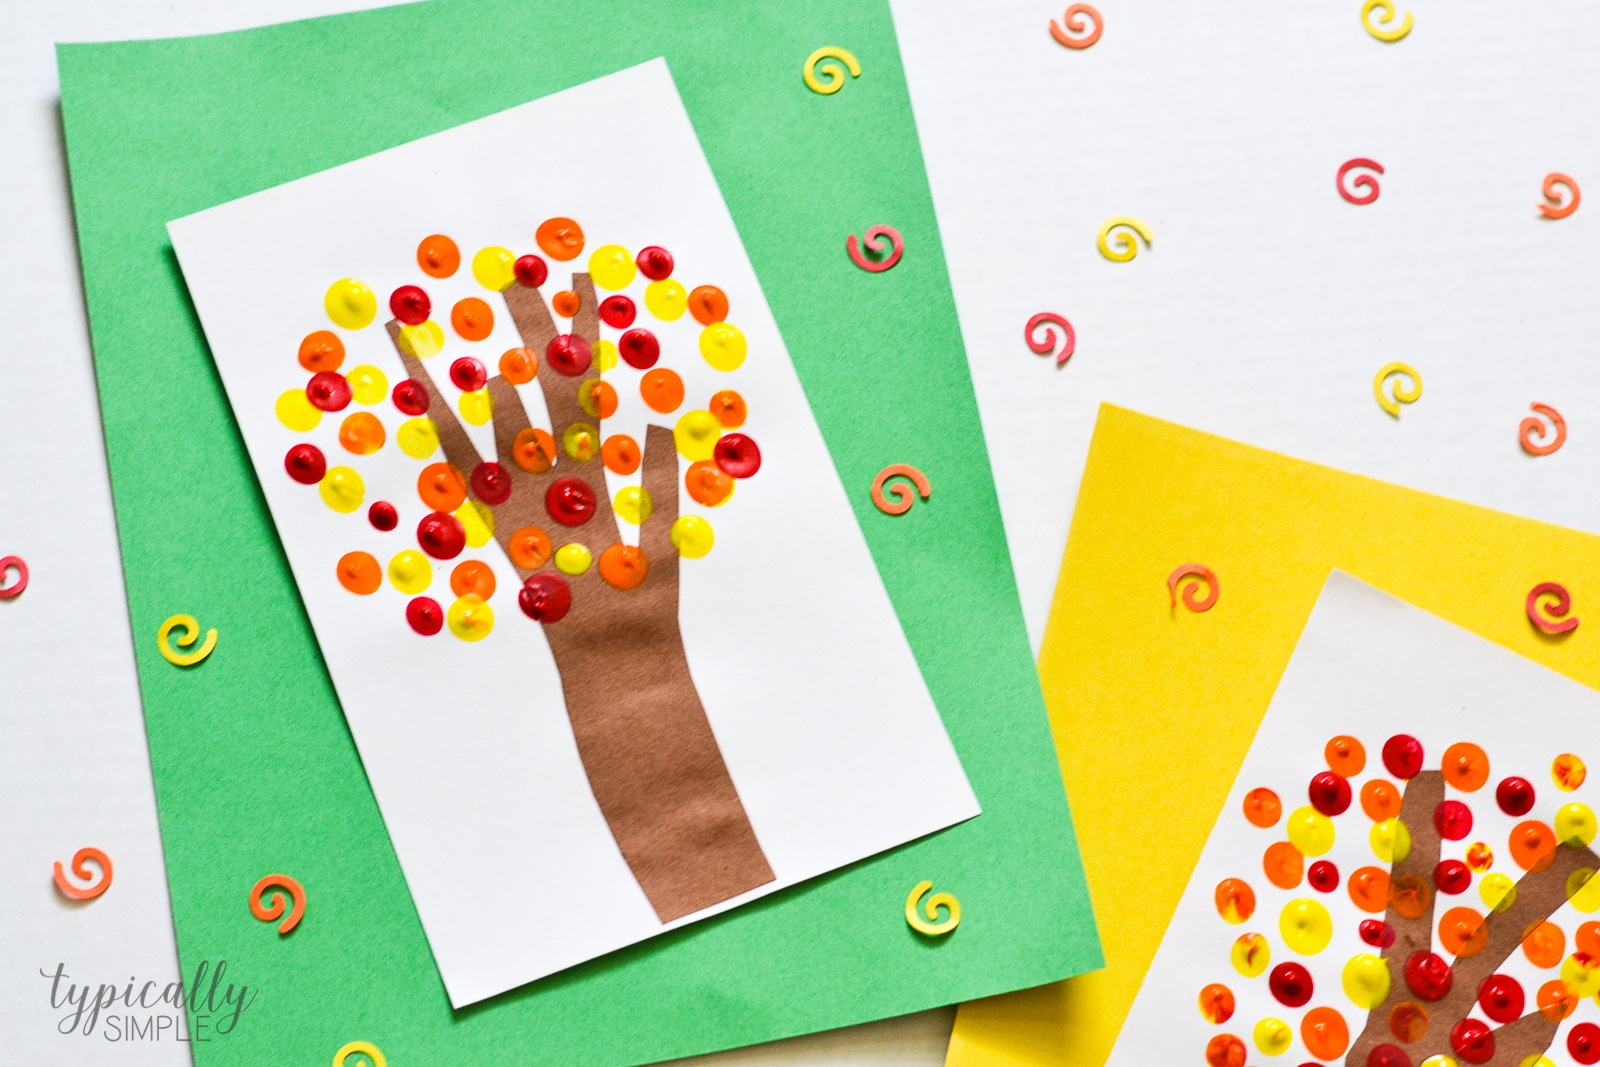 Fall Fingerprint Trees Craft Typically Simple